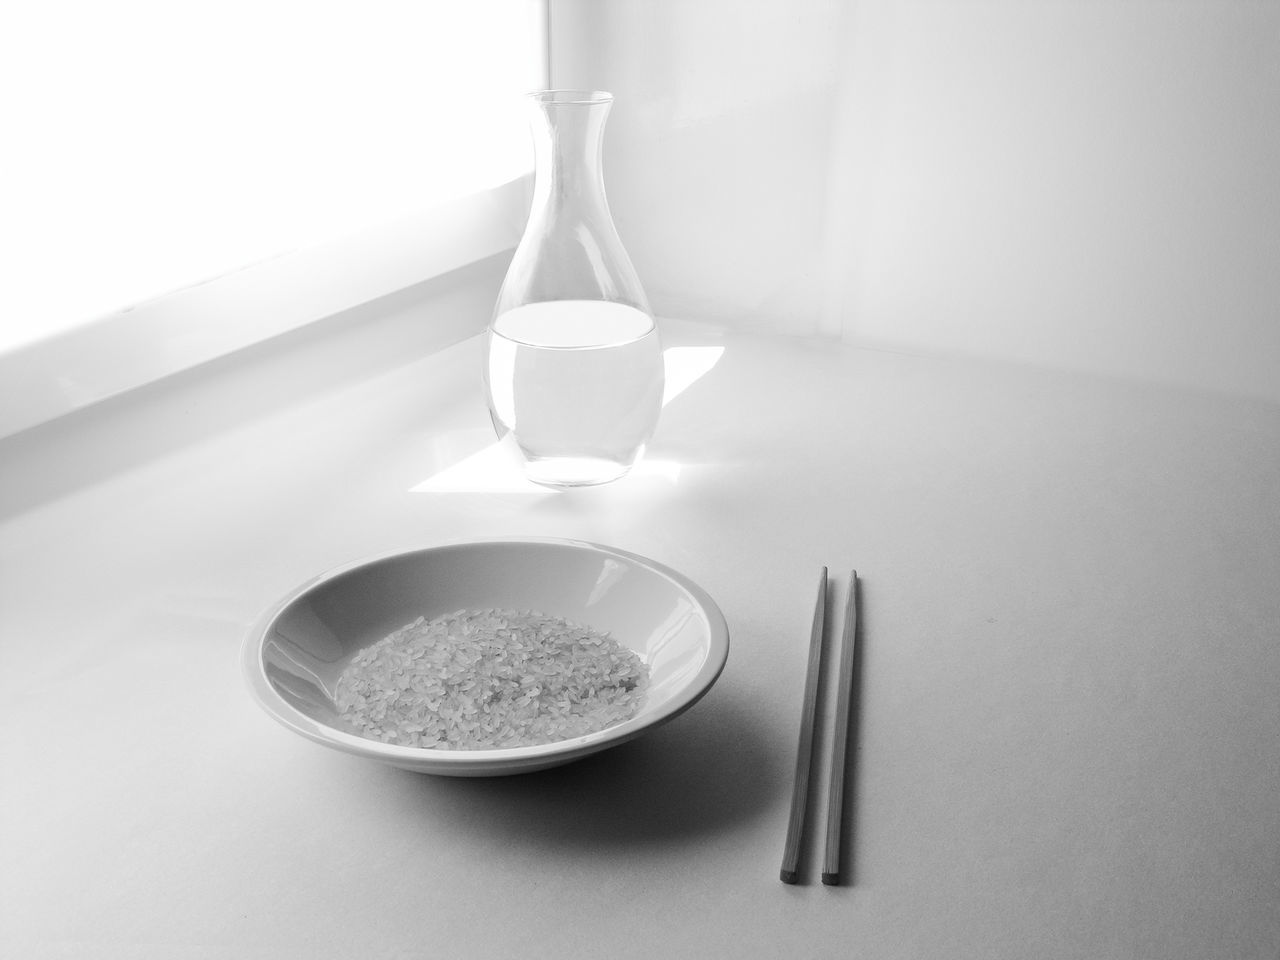 food and drink, table, bowl, no people, food, white background, indoors, high angle view, plate, close-up, healthy eating, studio shot, freshness, ready-to-eat, day